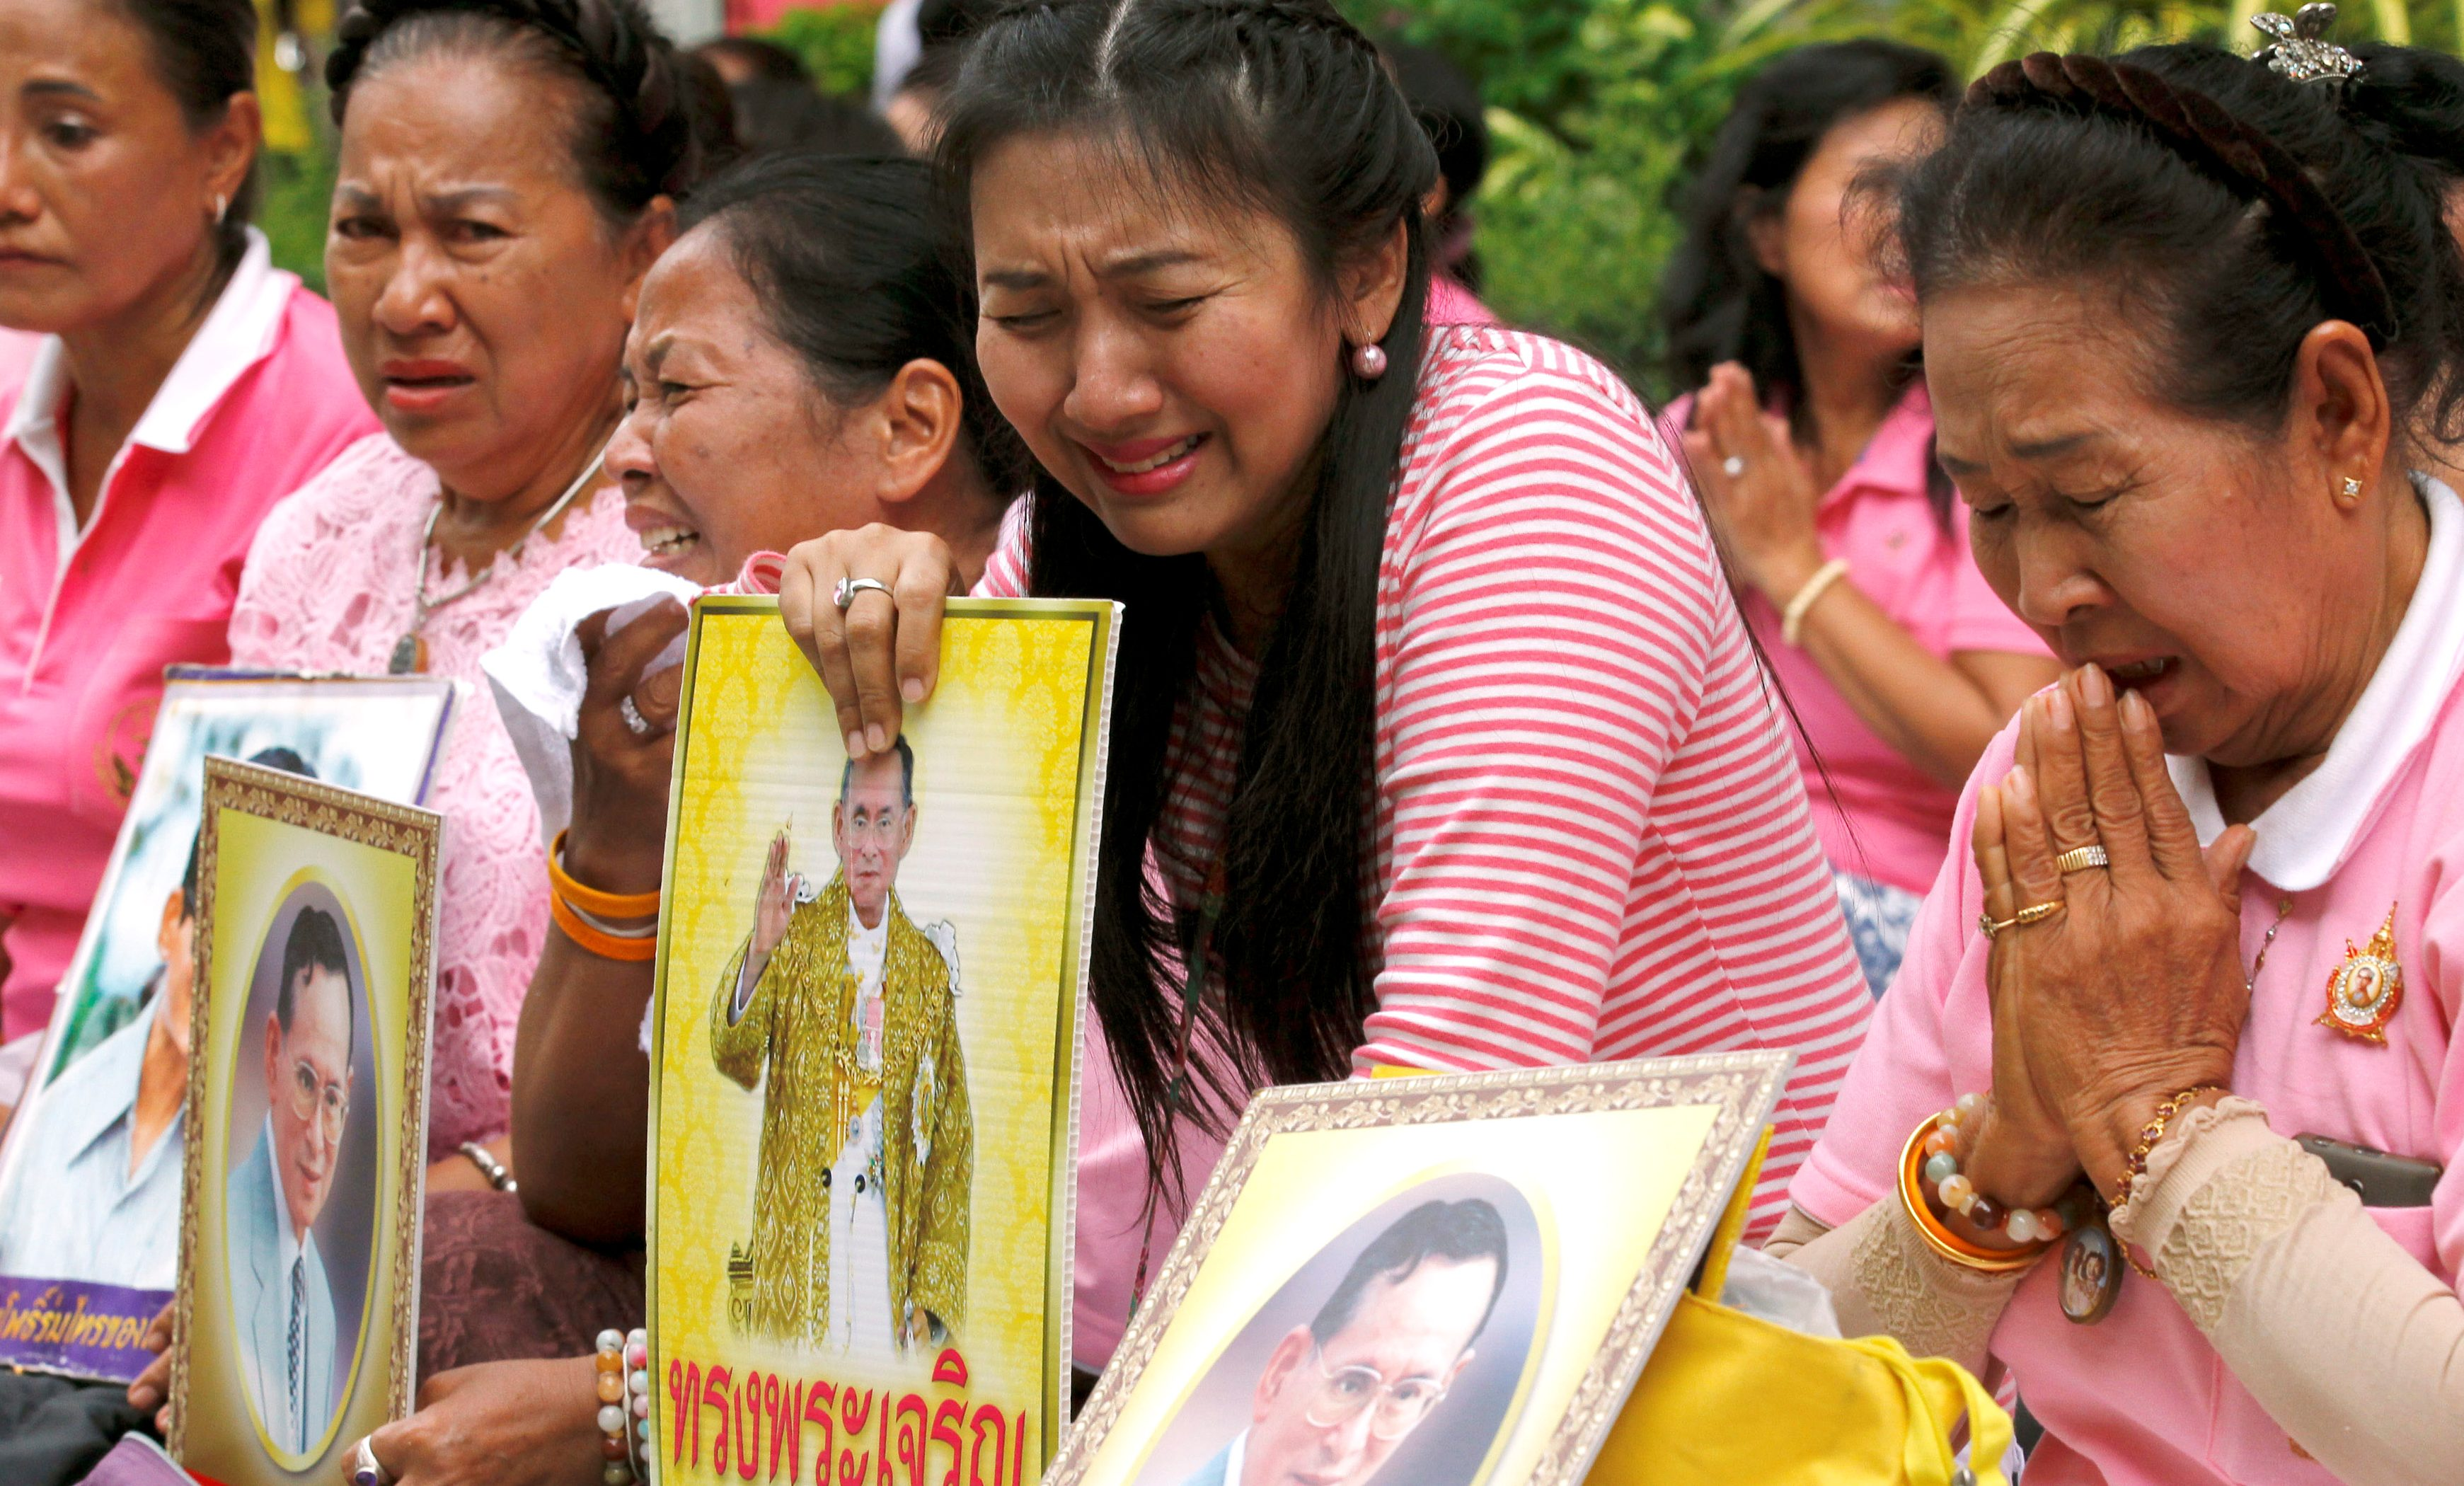 Well-wishers weep as they prays for Thailand's King Bhumibol Adulyadej at the Siriraj hospital where he is residing in Bangkok, Thailand, October 13, 2016.